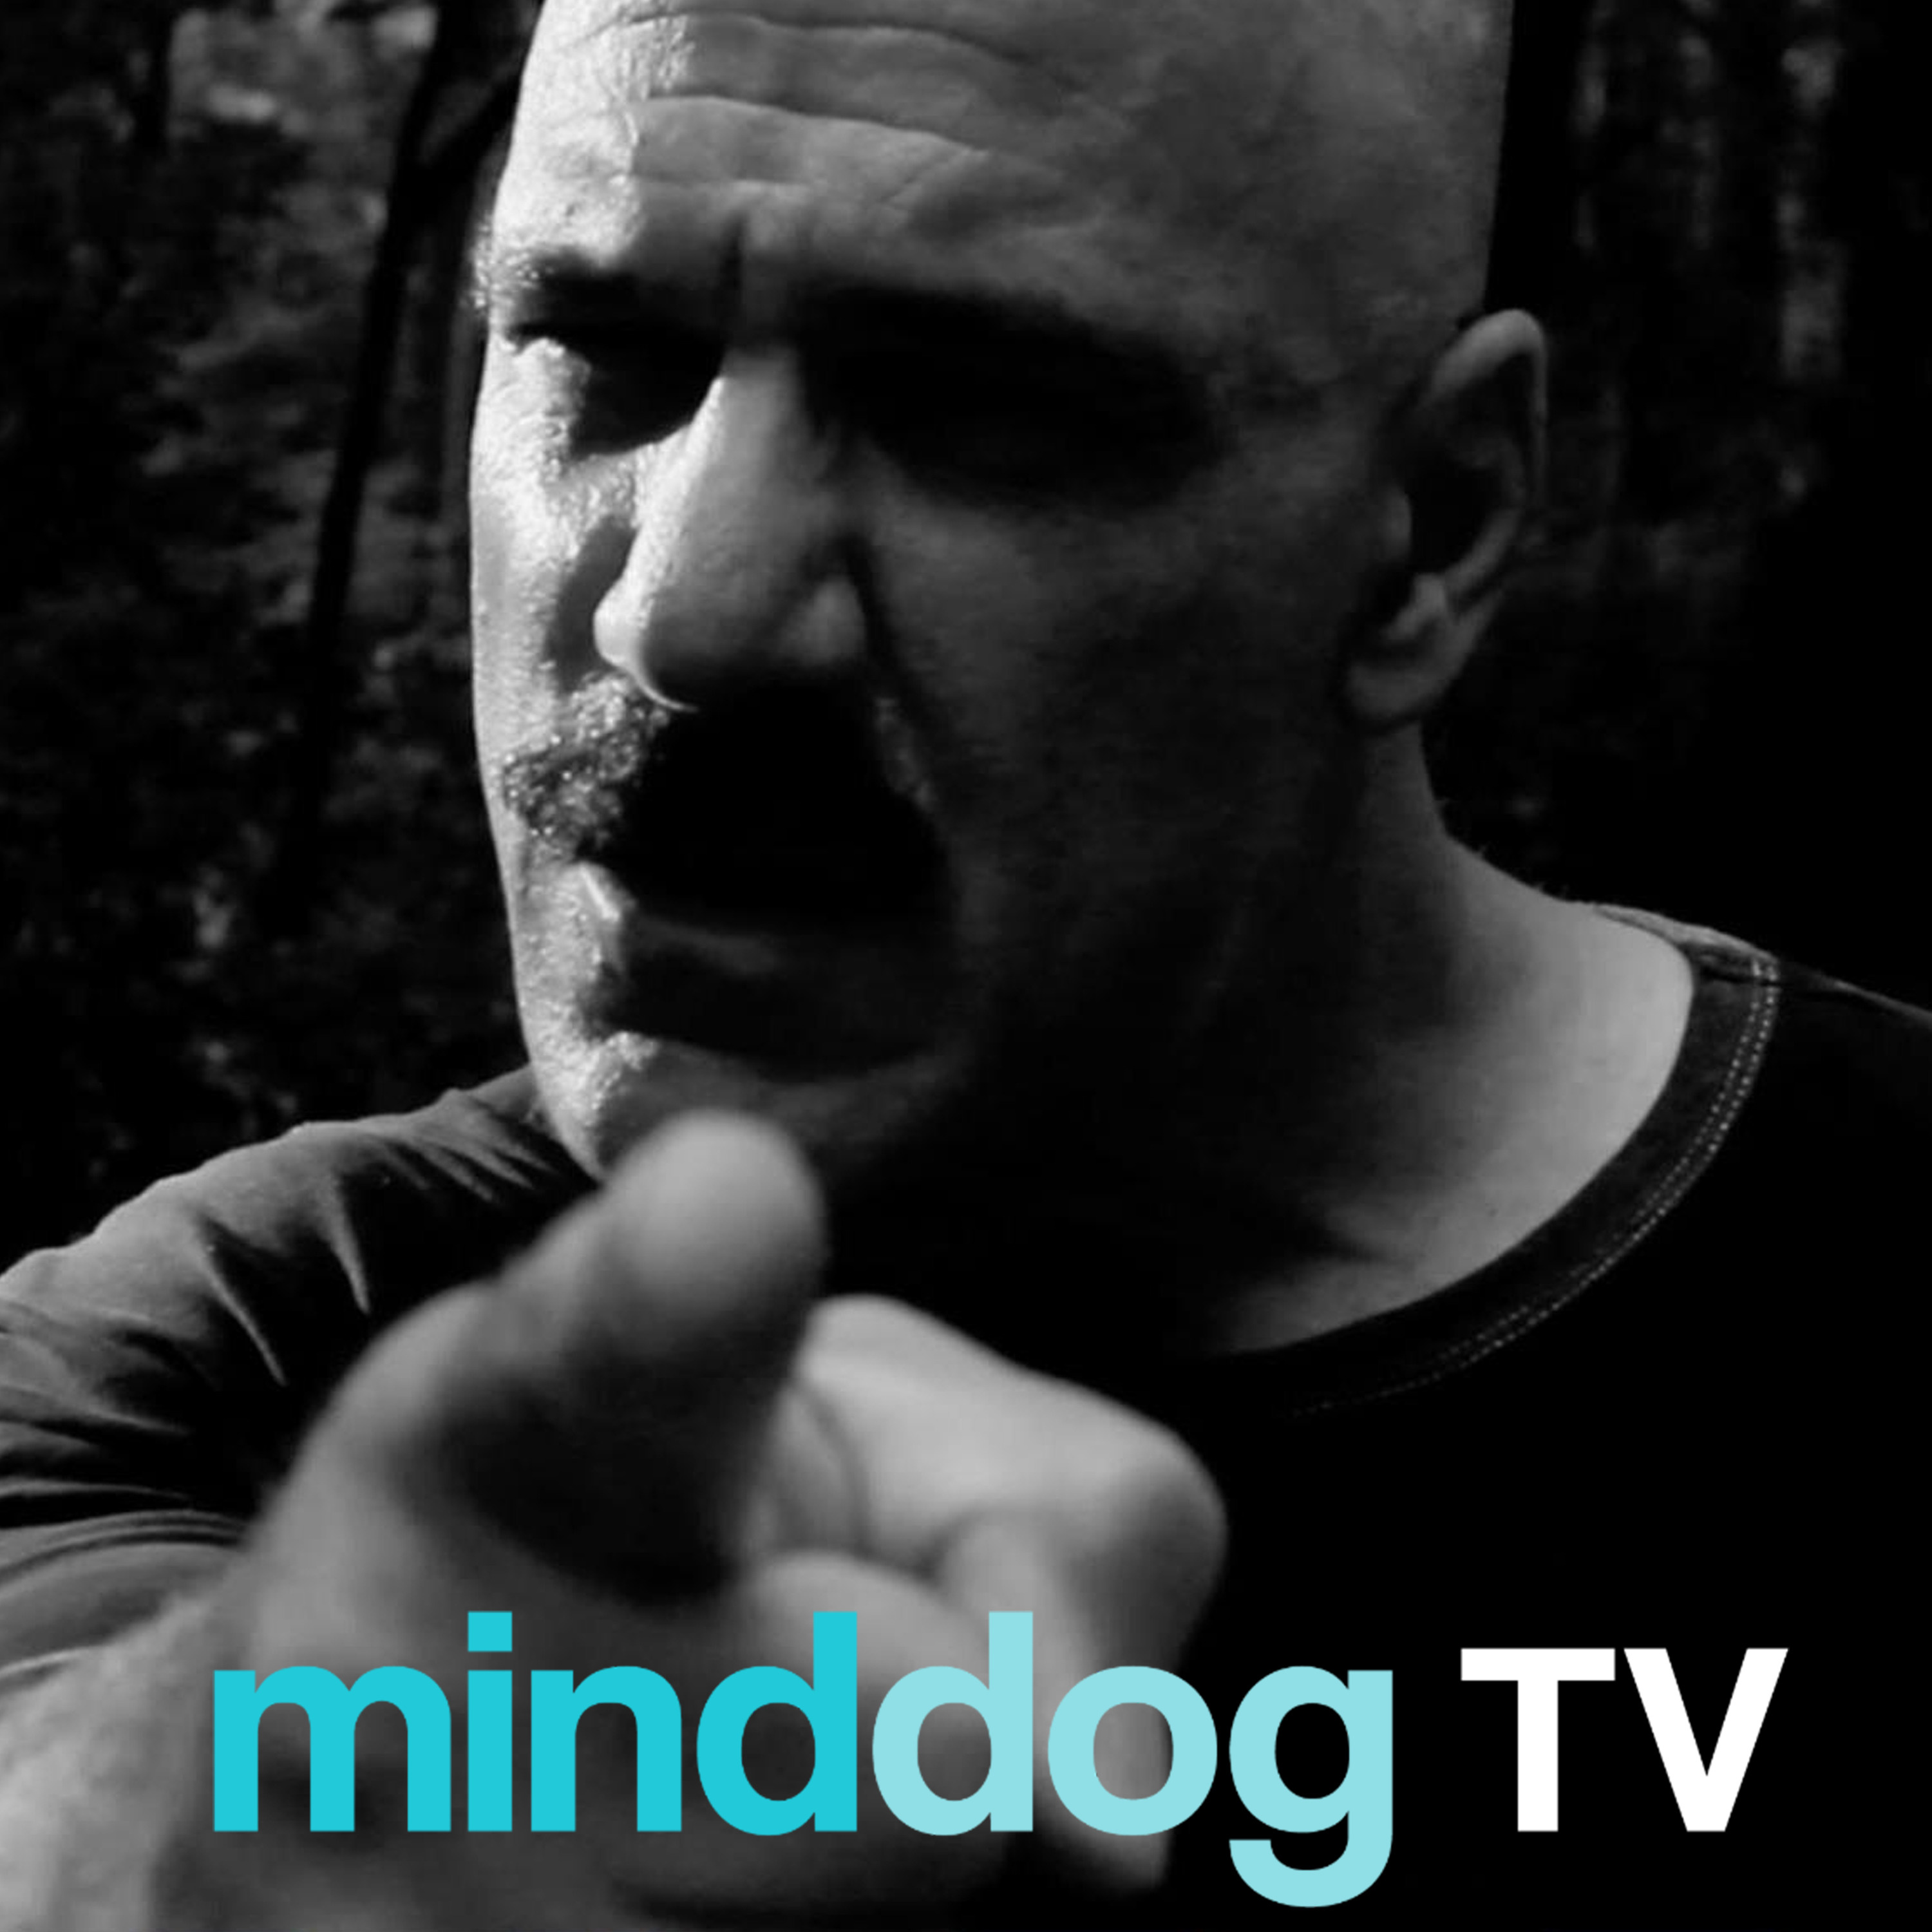 MinddogTV  Your Mind's Best Friend